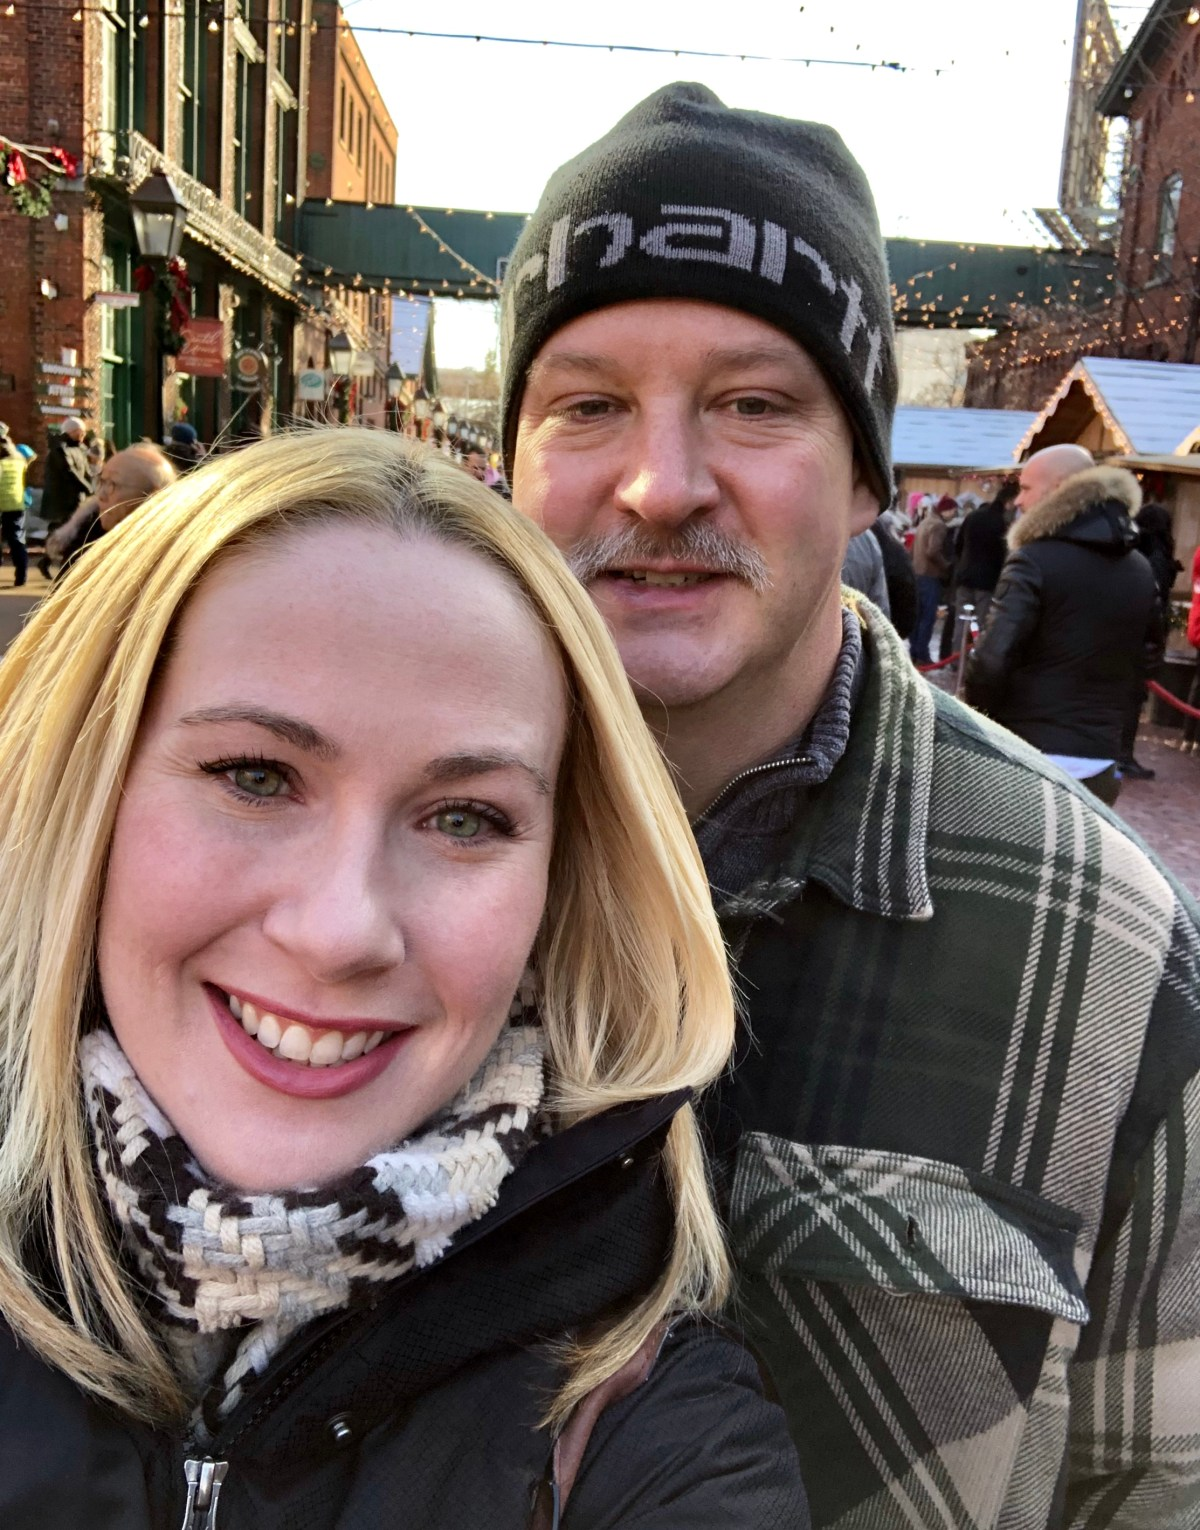 Happylifeblogspot at the Toronto Christmas Market #torontochristmasmarket #toronto #distillerydistrict #ontario #christmasmarkets